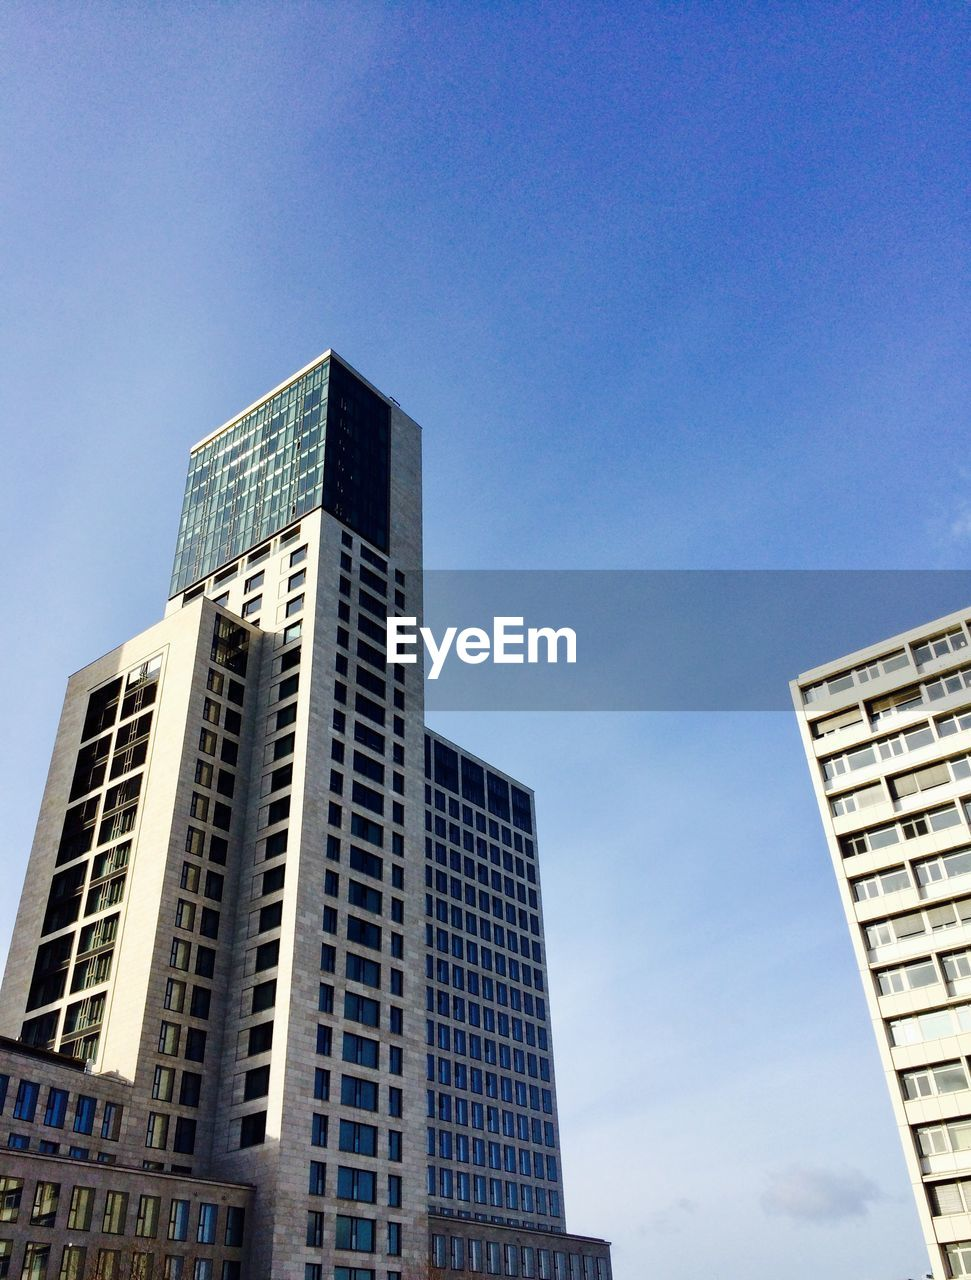 architecture, low angle view, skyscraper, modern, building exterior, city, built structure, no people, outdoors, day, clear sky, blue, tall, sky, cityscape